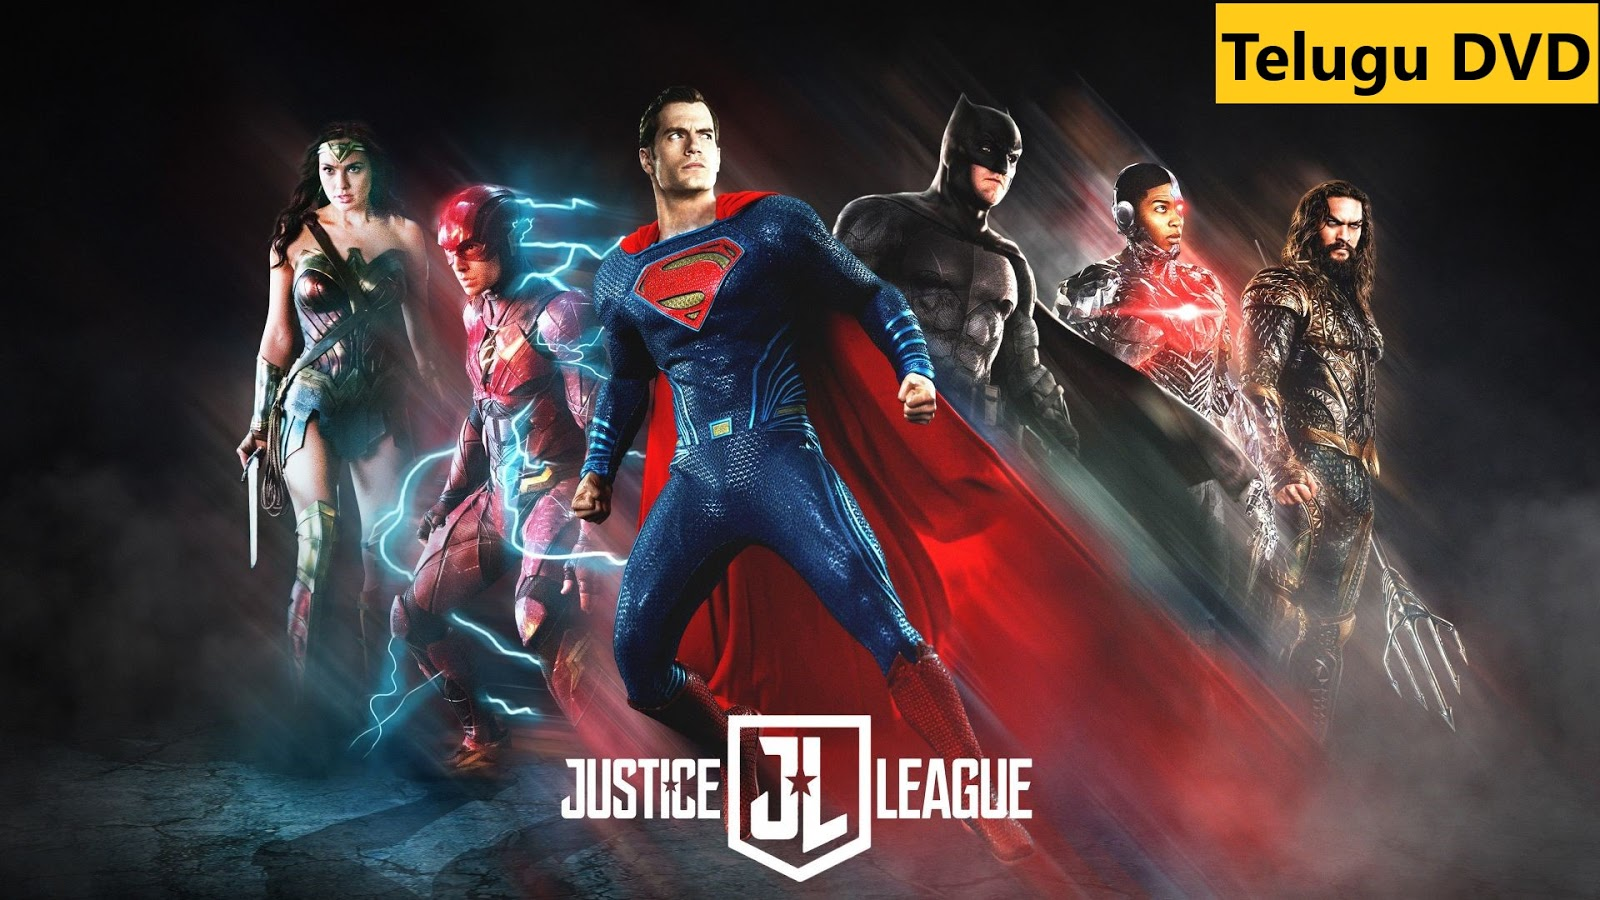 Officially confirmed: The Snyder Cut from the Justice League is coming!